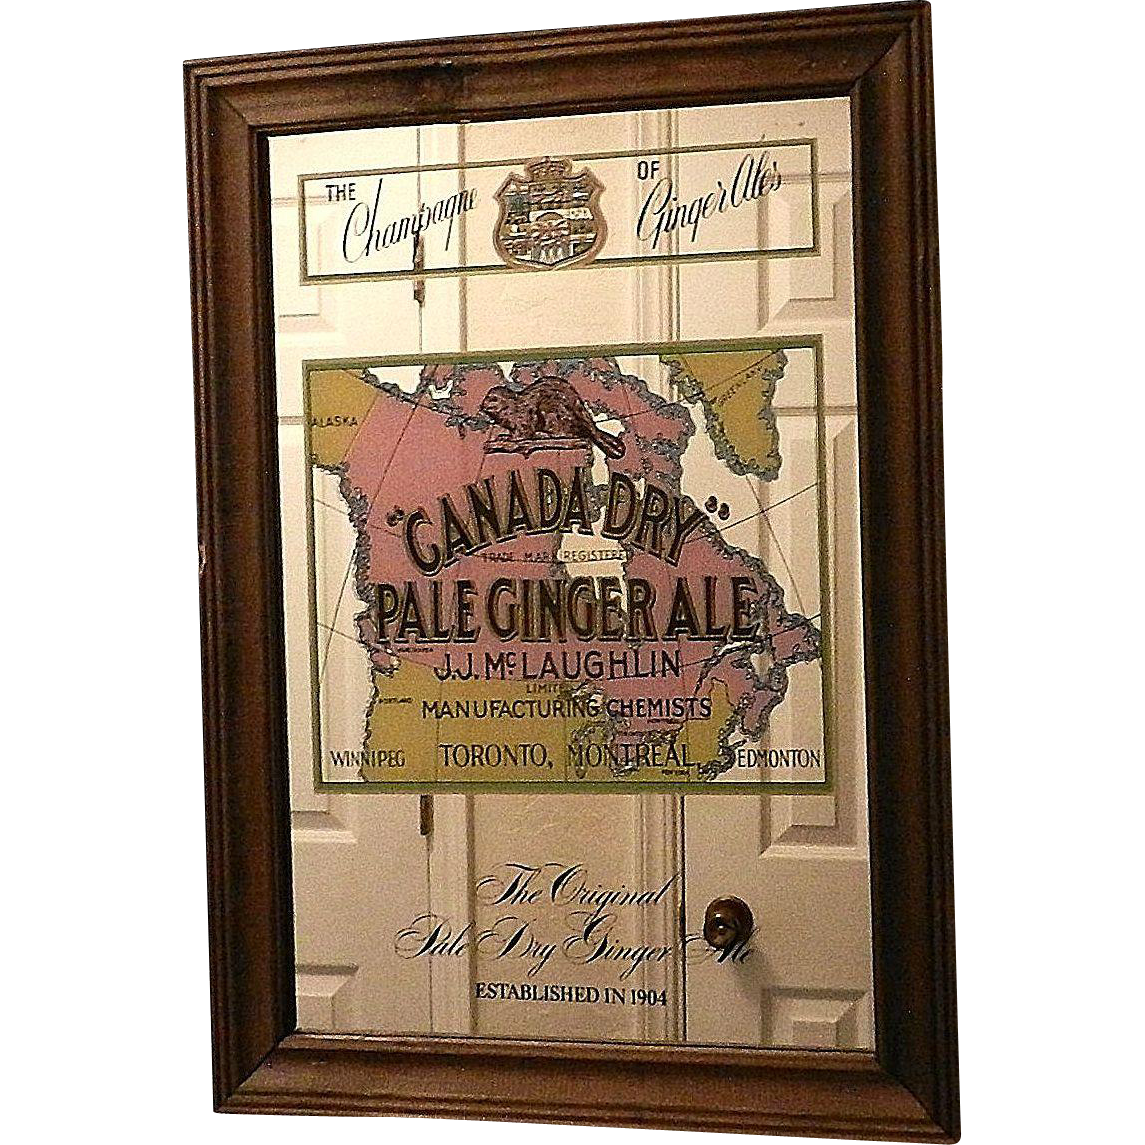 Vintage Canada Dry Ginger Ale Advertising Mirror My